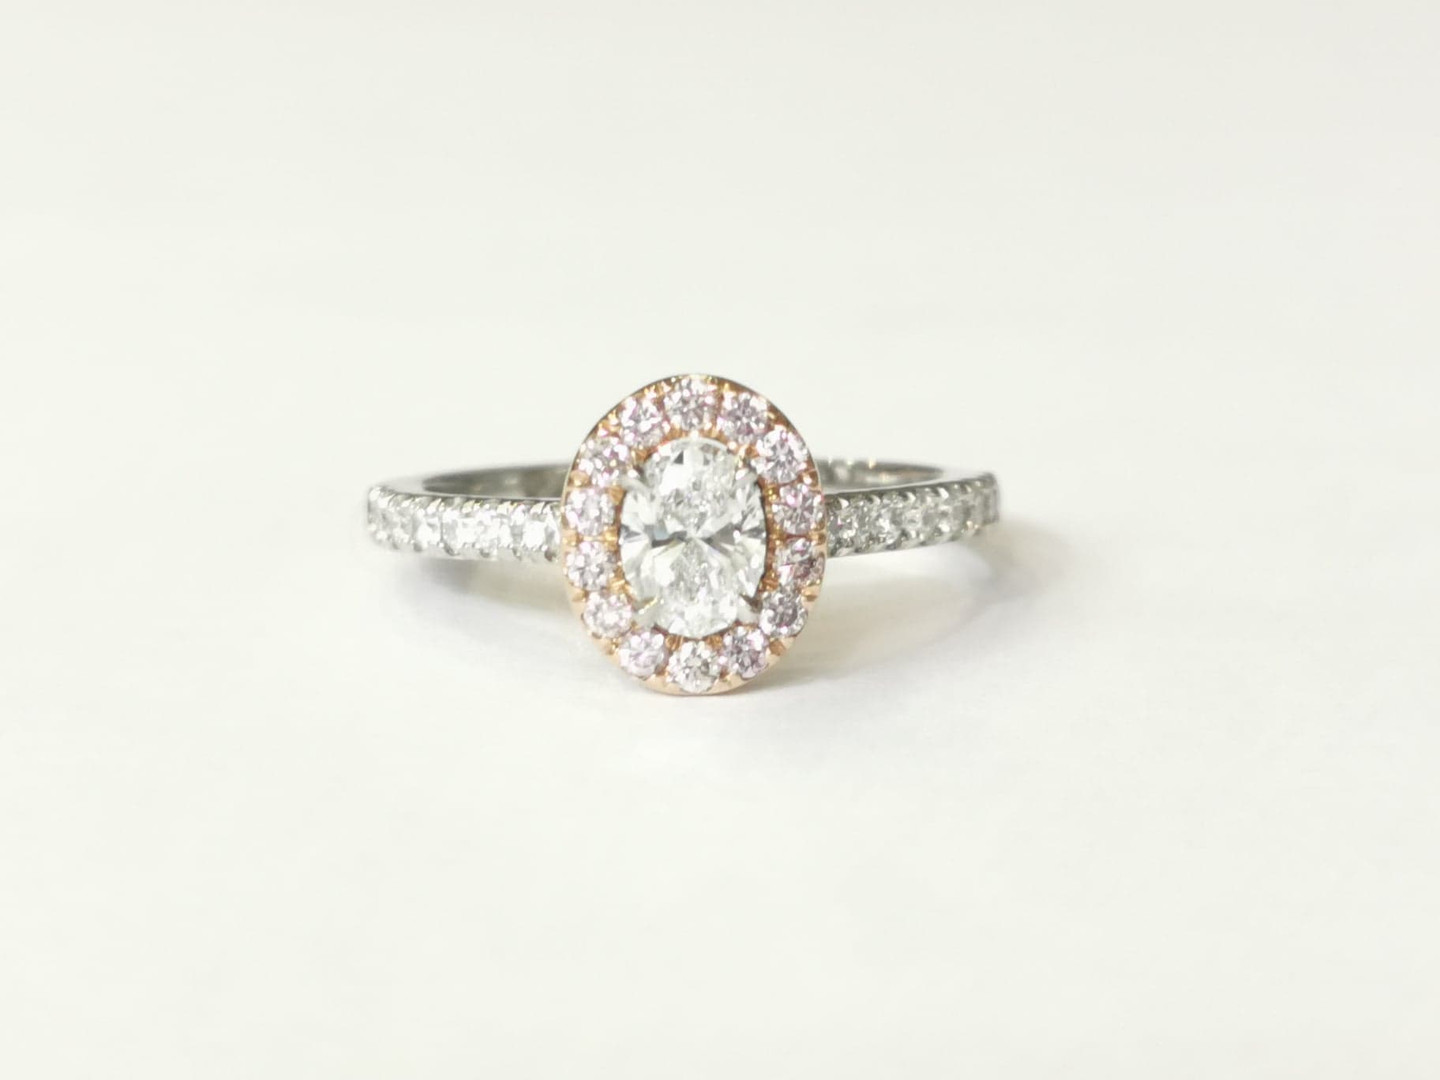 44370 Platinum & 18ct rose gold 0.41ct white diamonds D VS2 + 0.22ct pink diamonds £5600.00